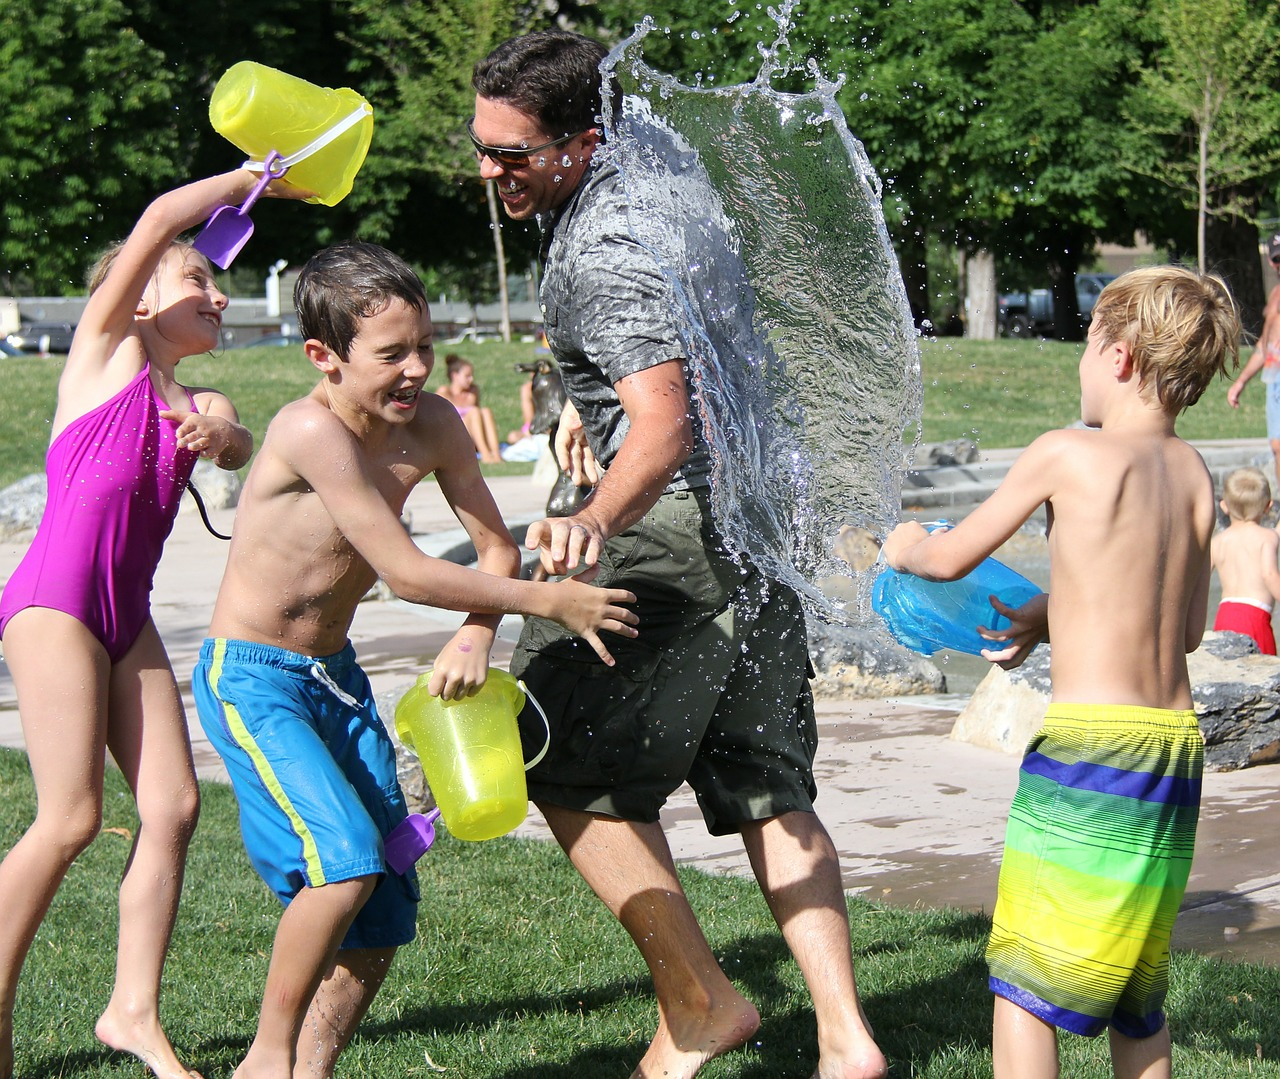 Water balloon fights are a fun outdoor activity.